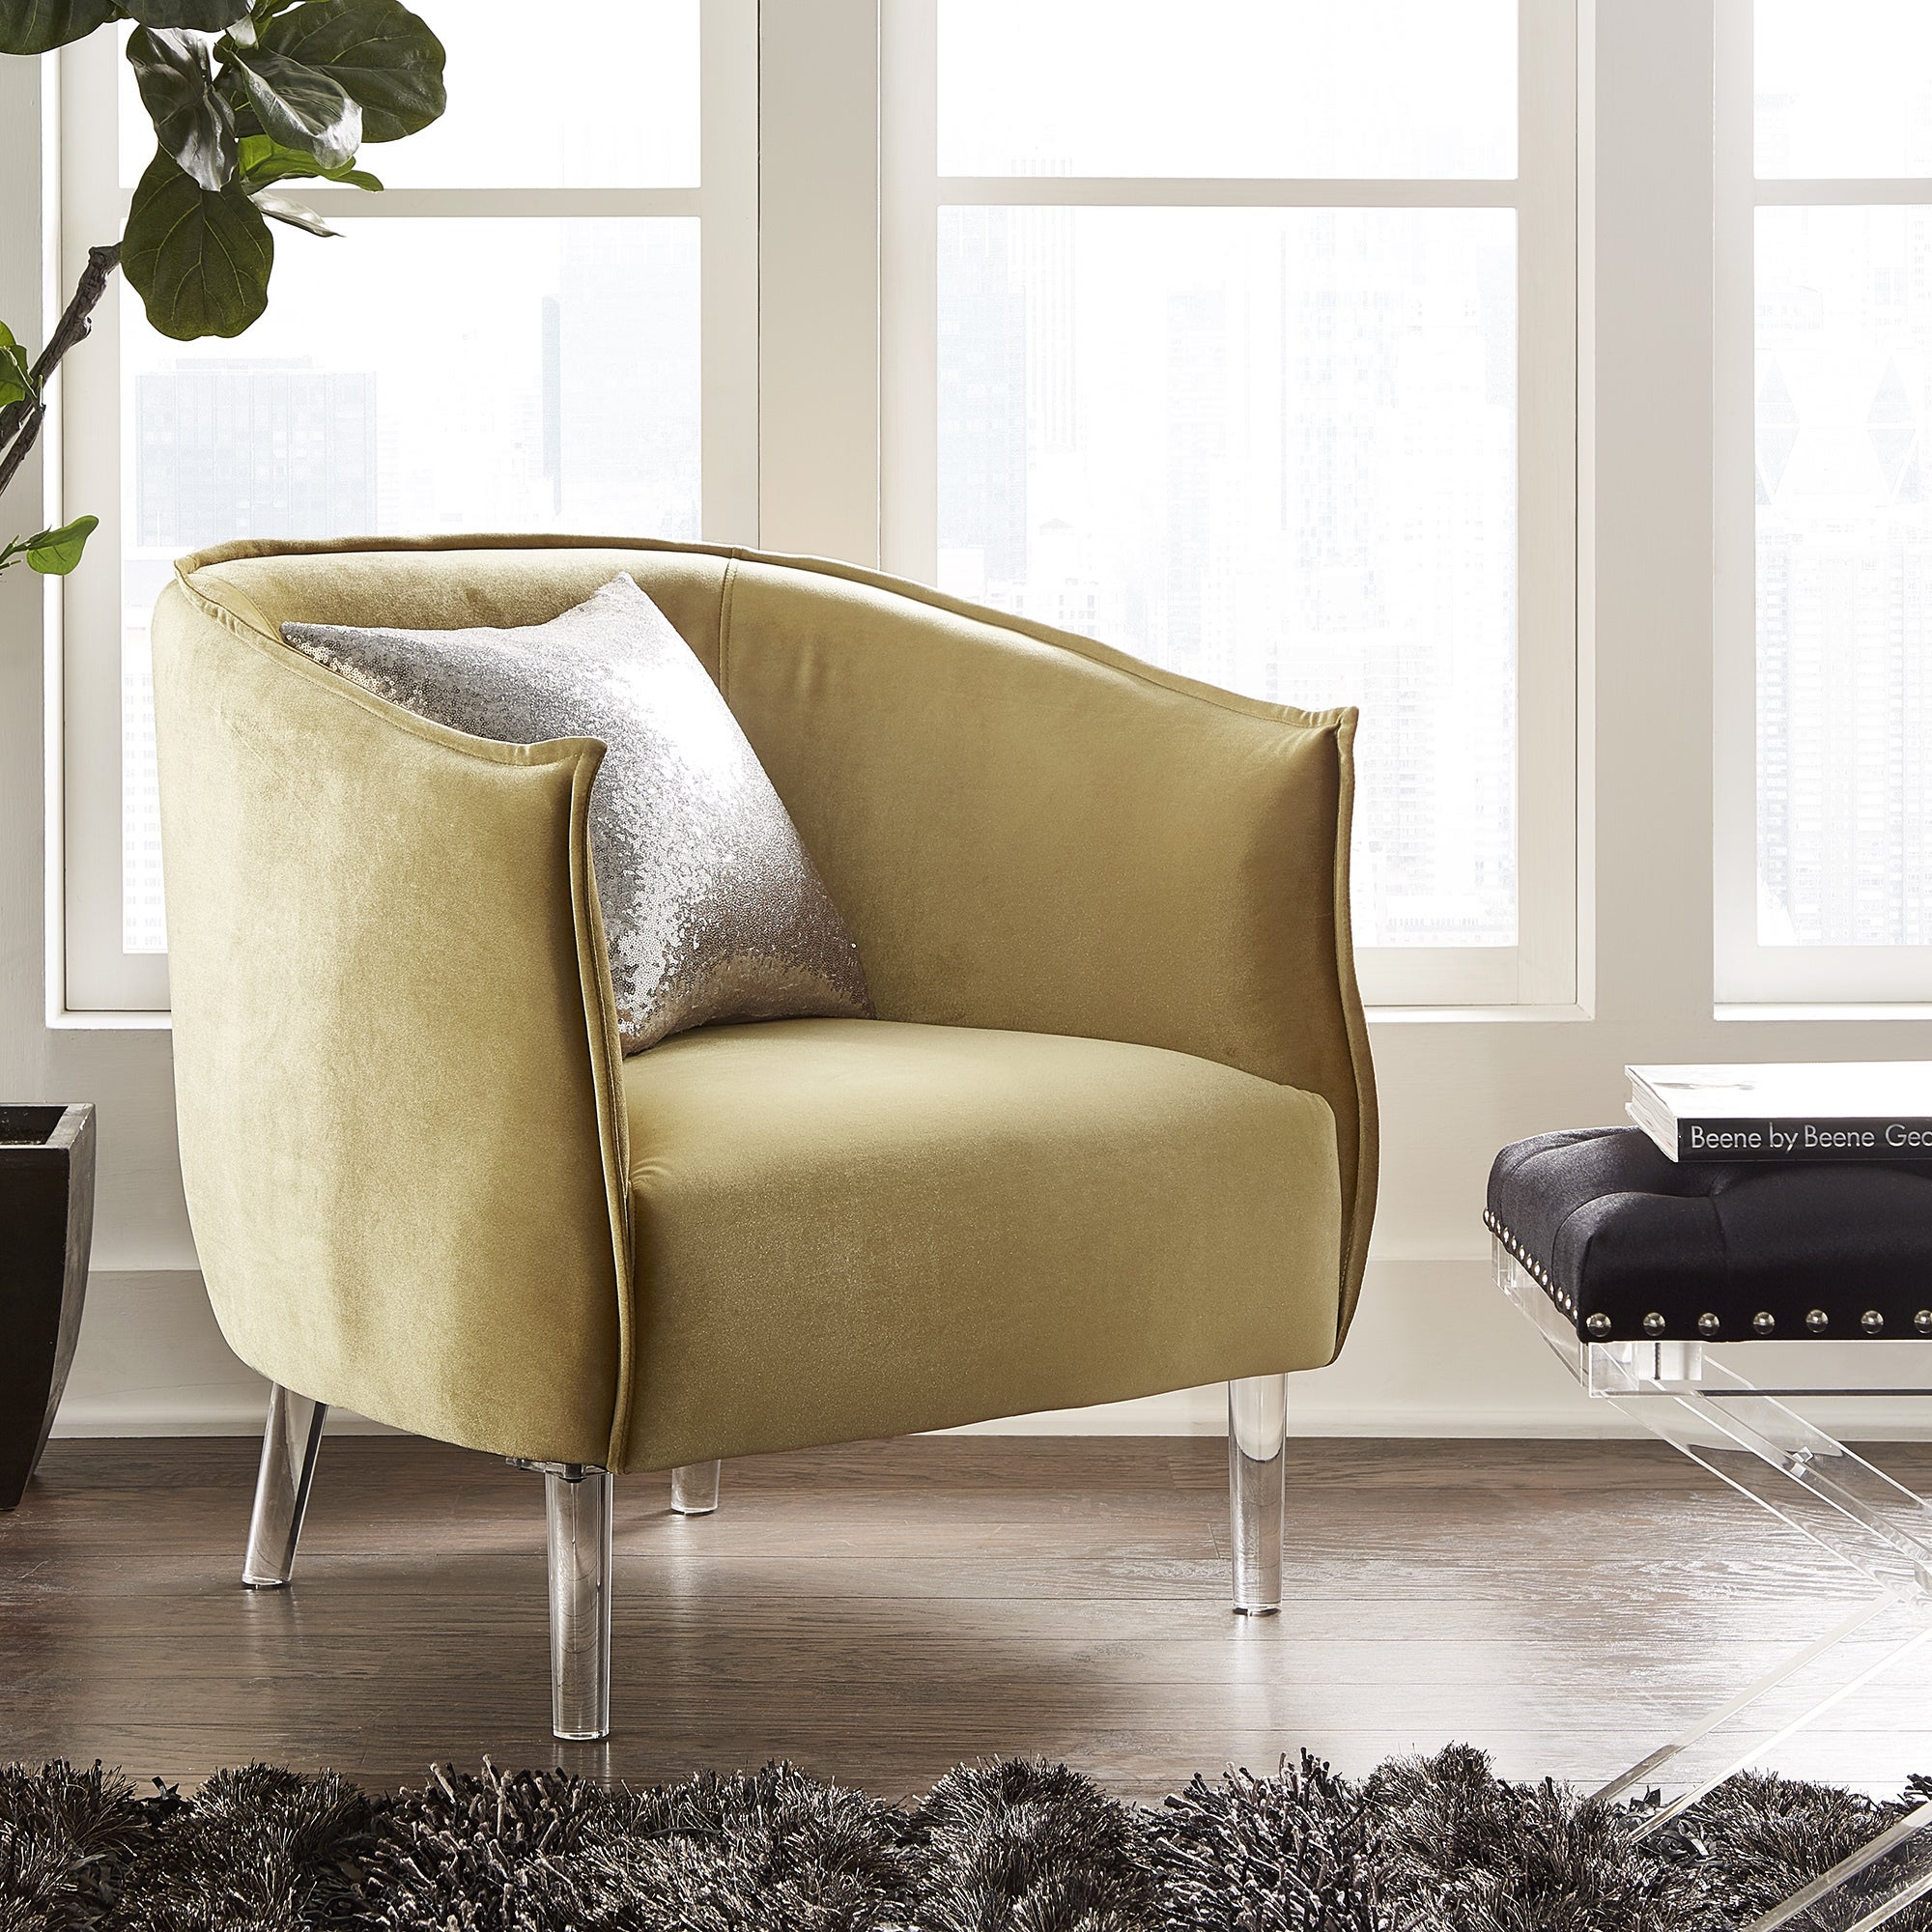 Vianne Velvet Curved Back Acrylic Leg Accent Chair By INSPIRE Q Bold   Free  Shipping Today   Overstock.com   21223238